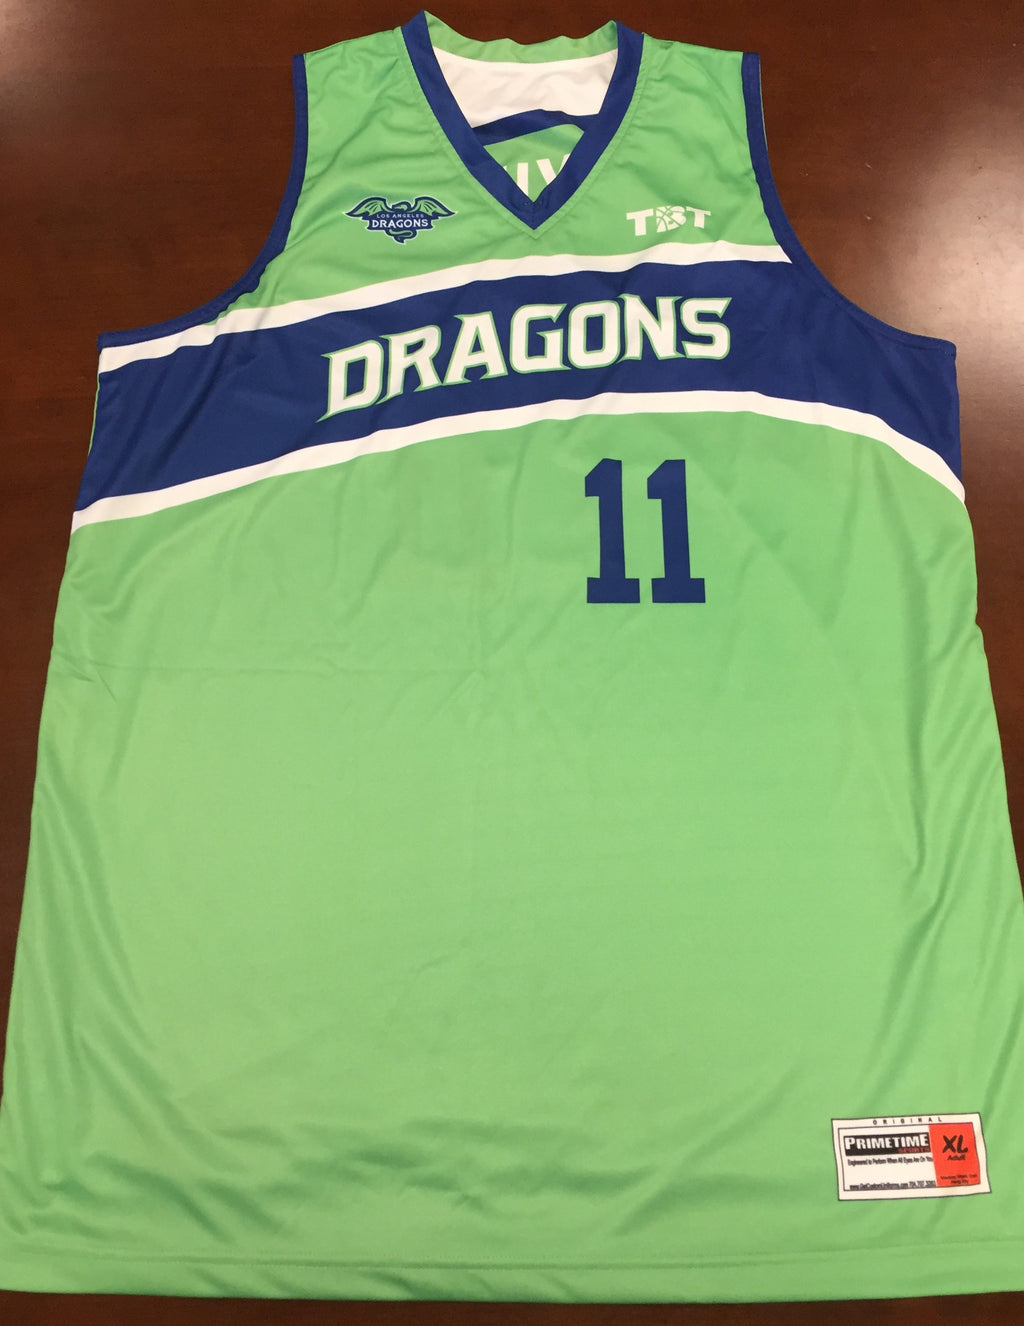 Los Angeles Dragons - 2015 Official Team Uniform (Jersey & Shorts sold separately)